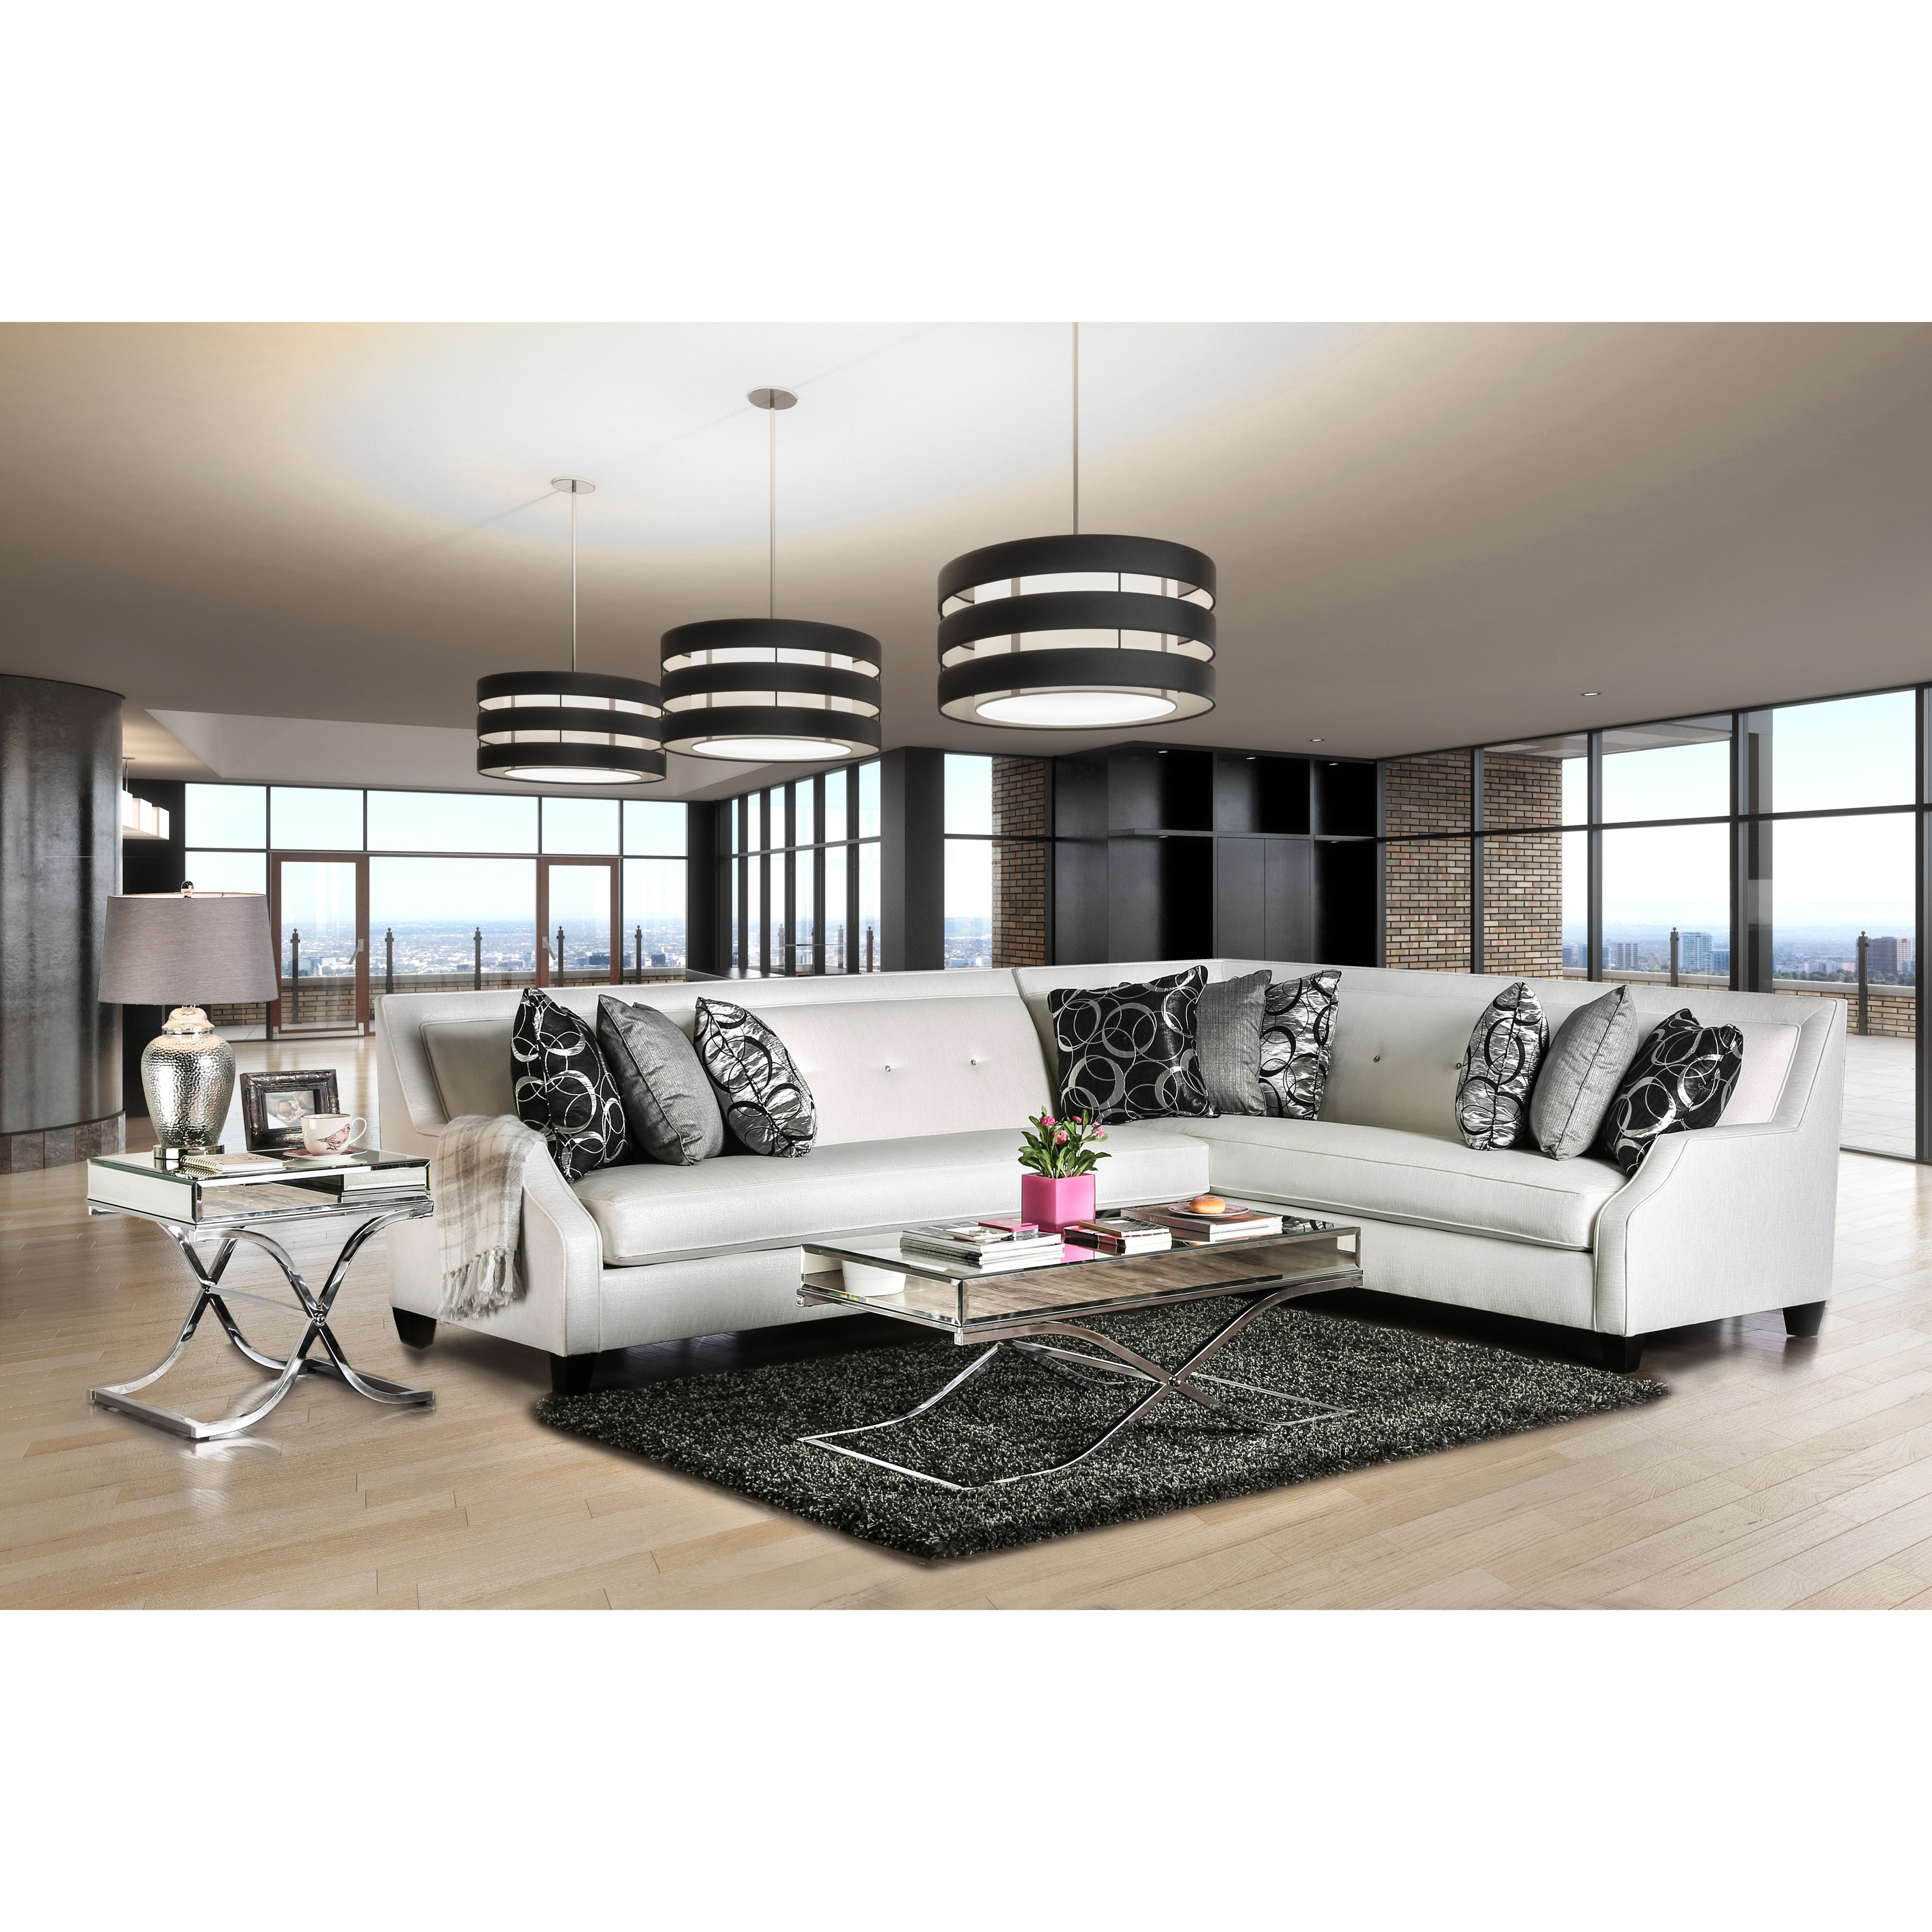 Furniture of America Clover Contemporary Tufted High-shine Fabric Off-White Sectional by